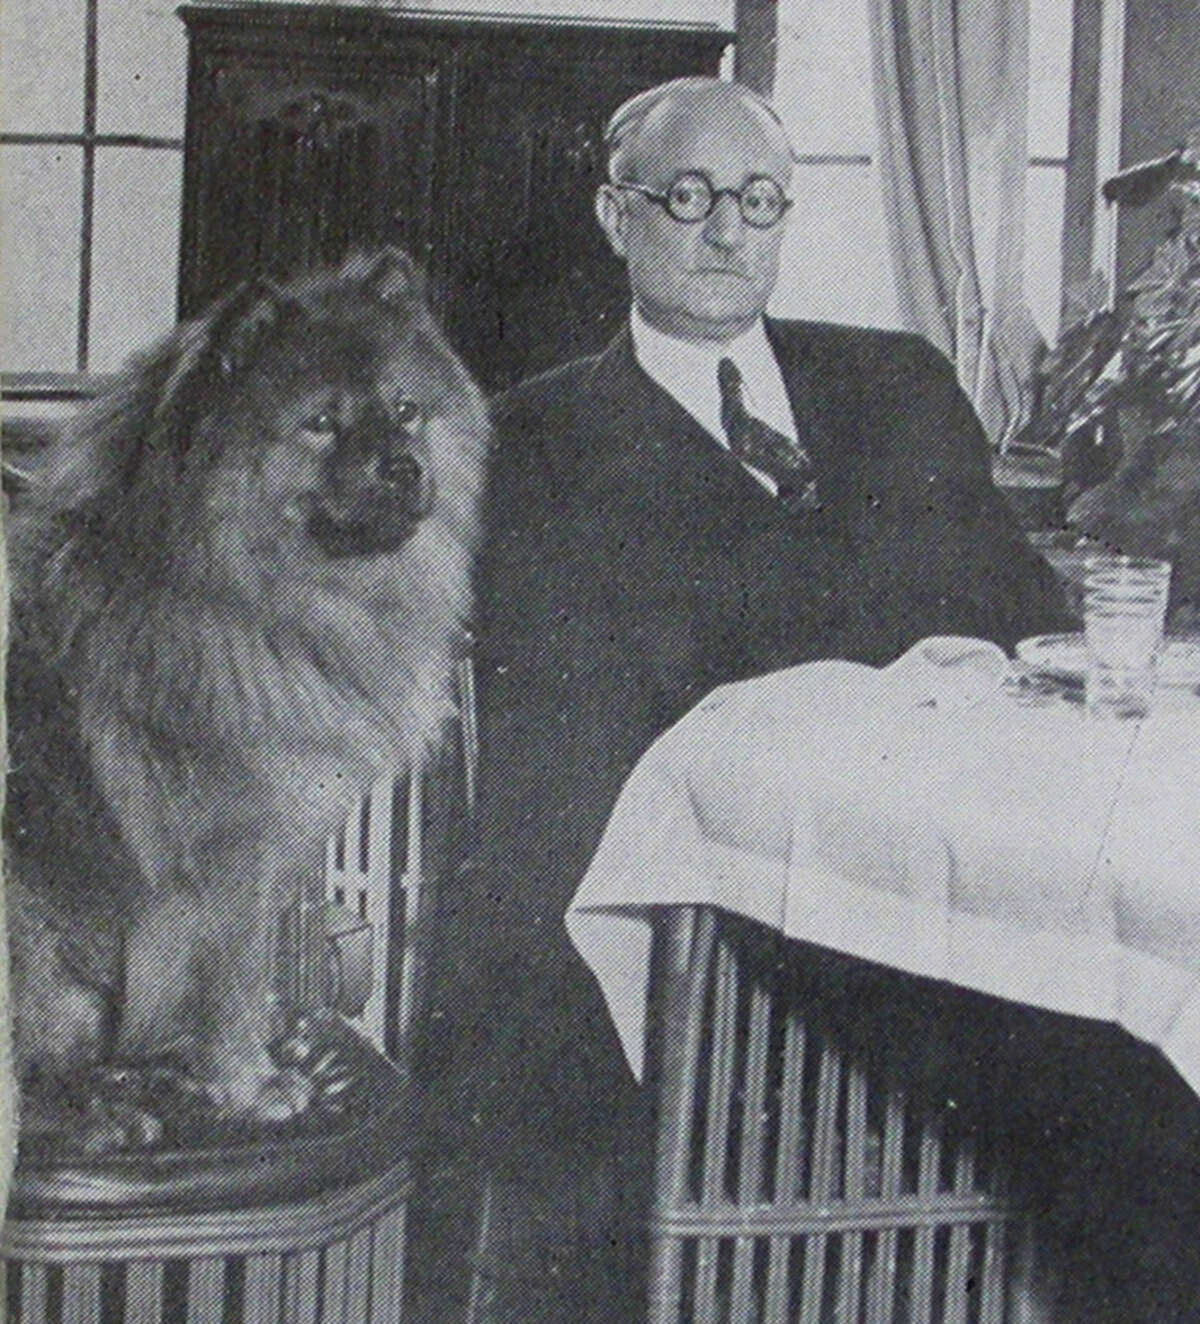 Fairfield's great imposter, seen in an elegant dining room with a four-legged accomplice, was approached by Republicans in 1937 about making a run for president. A year later, his elaborate con collapsed.